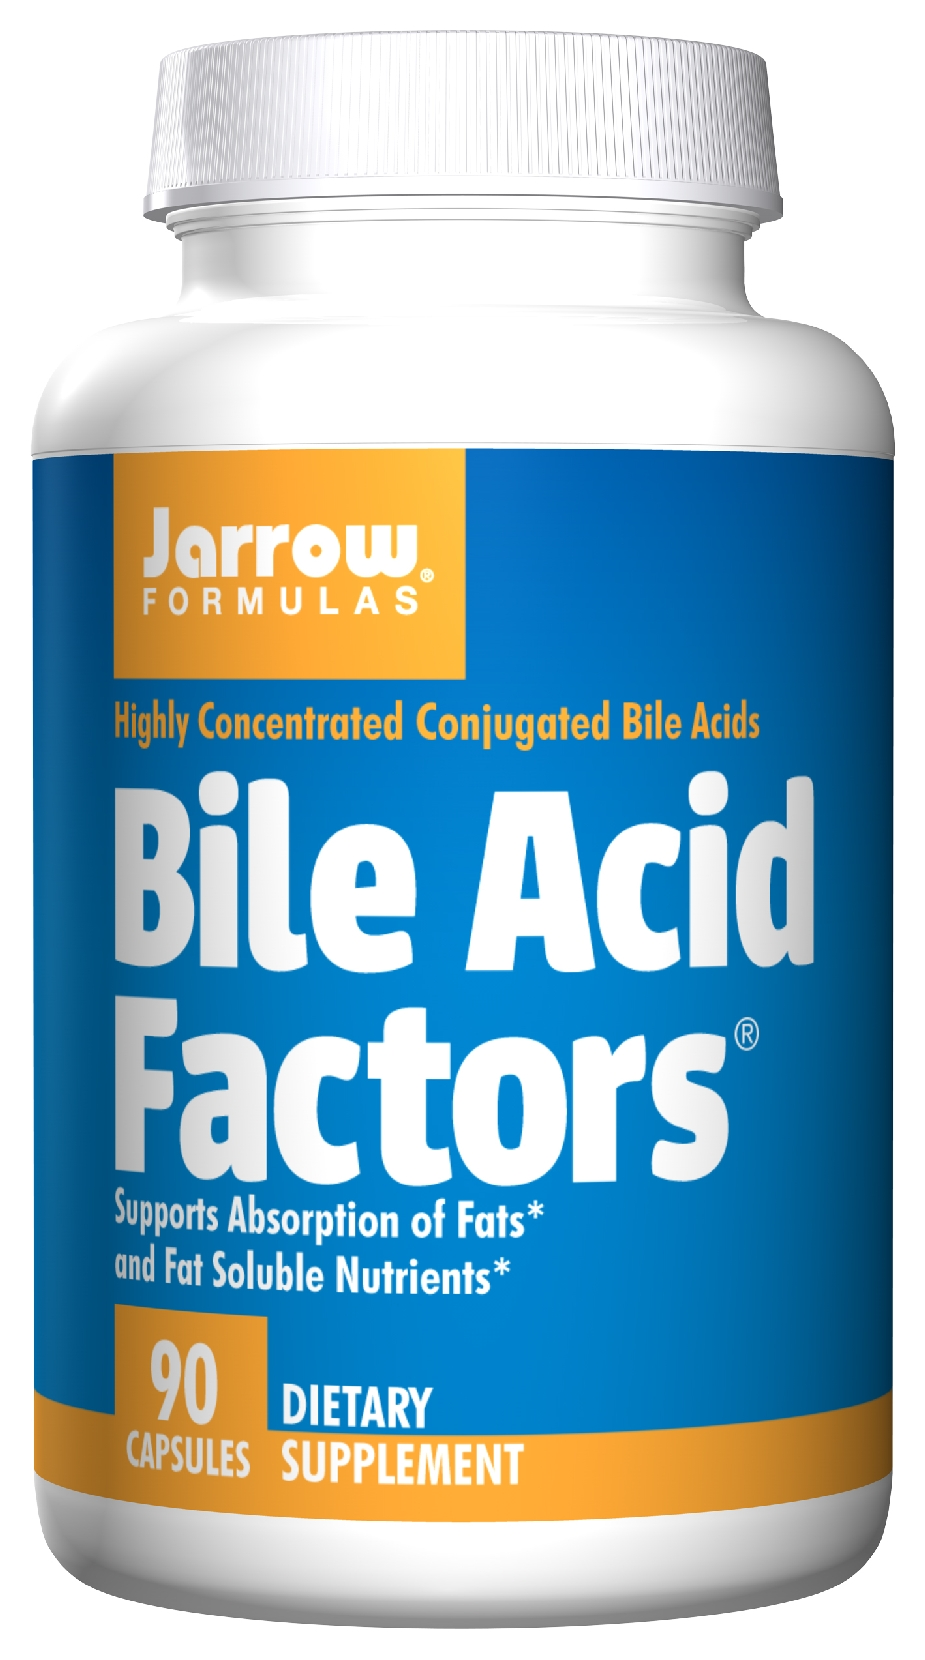 Bile Acid Factors 90 caps by Jarrow Formulas